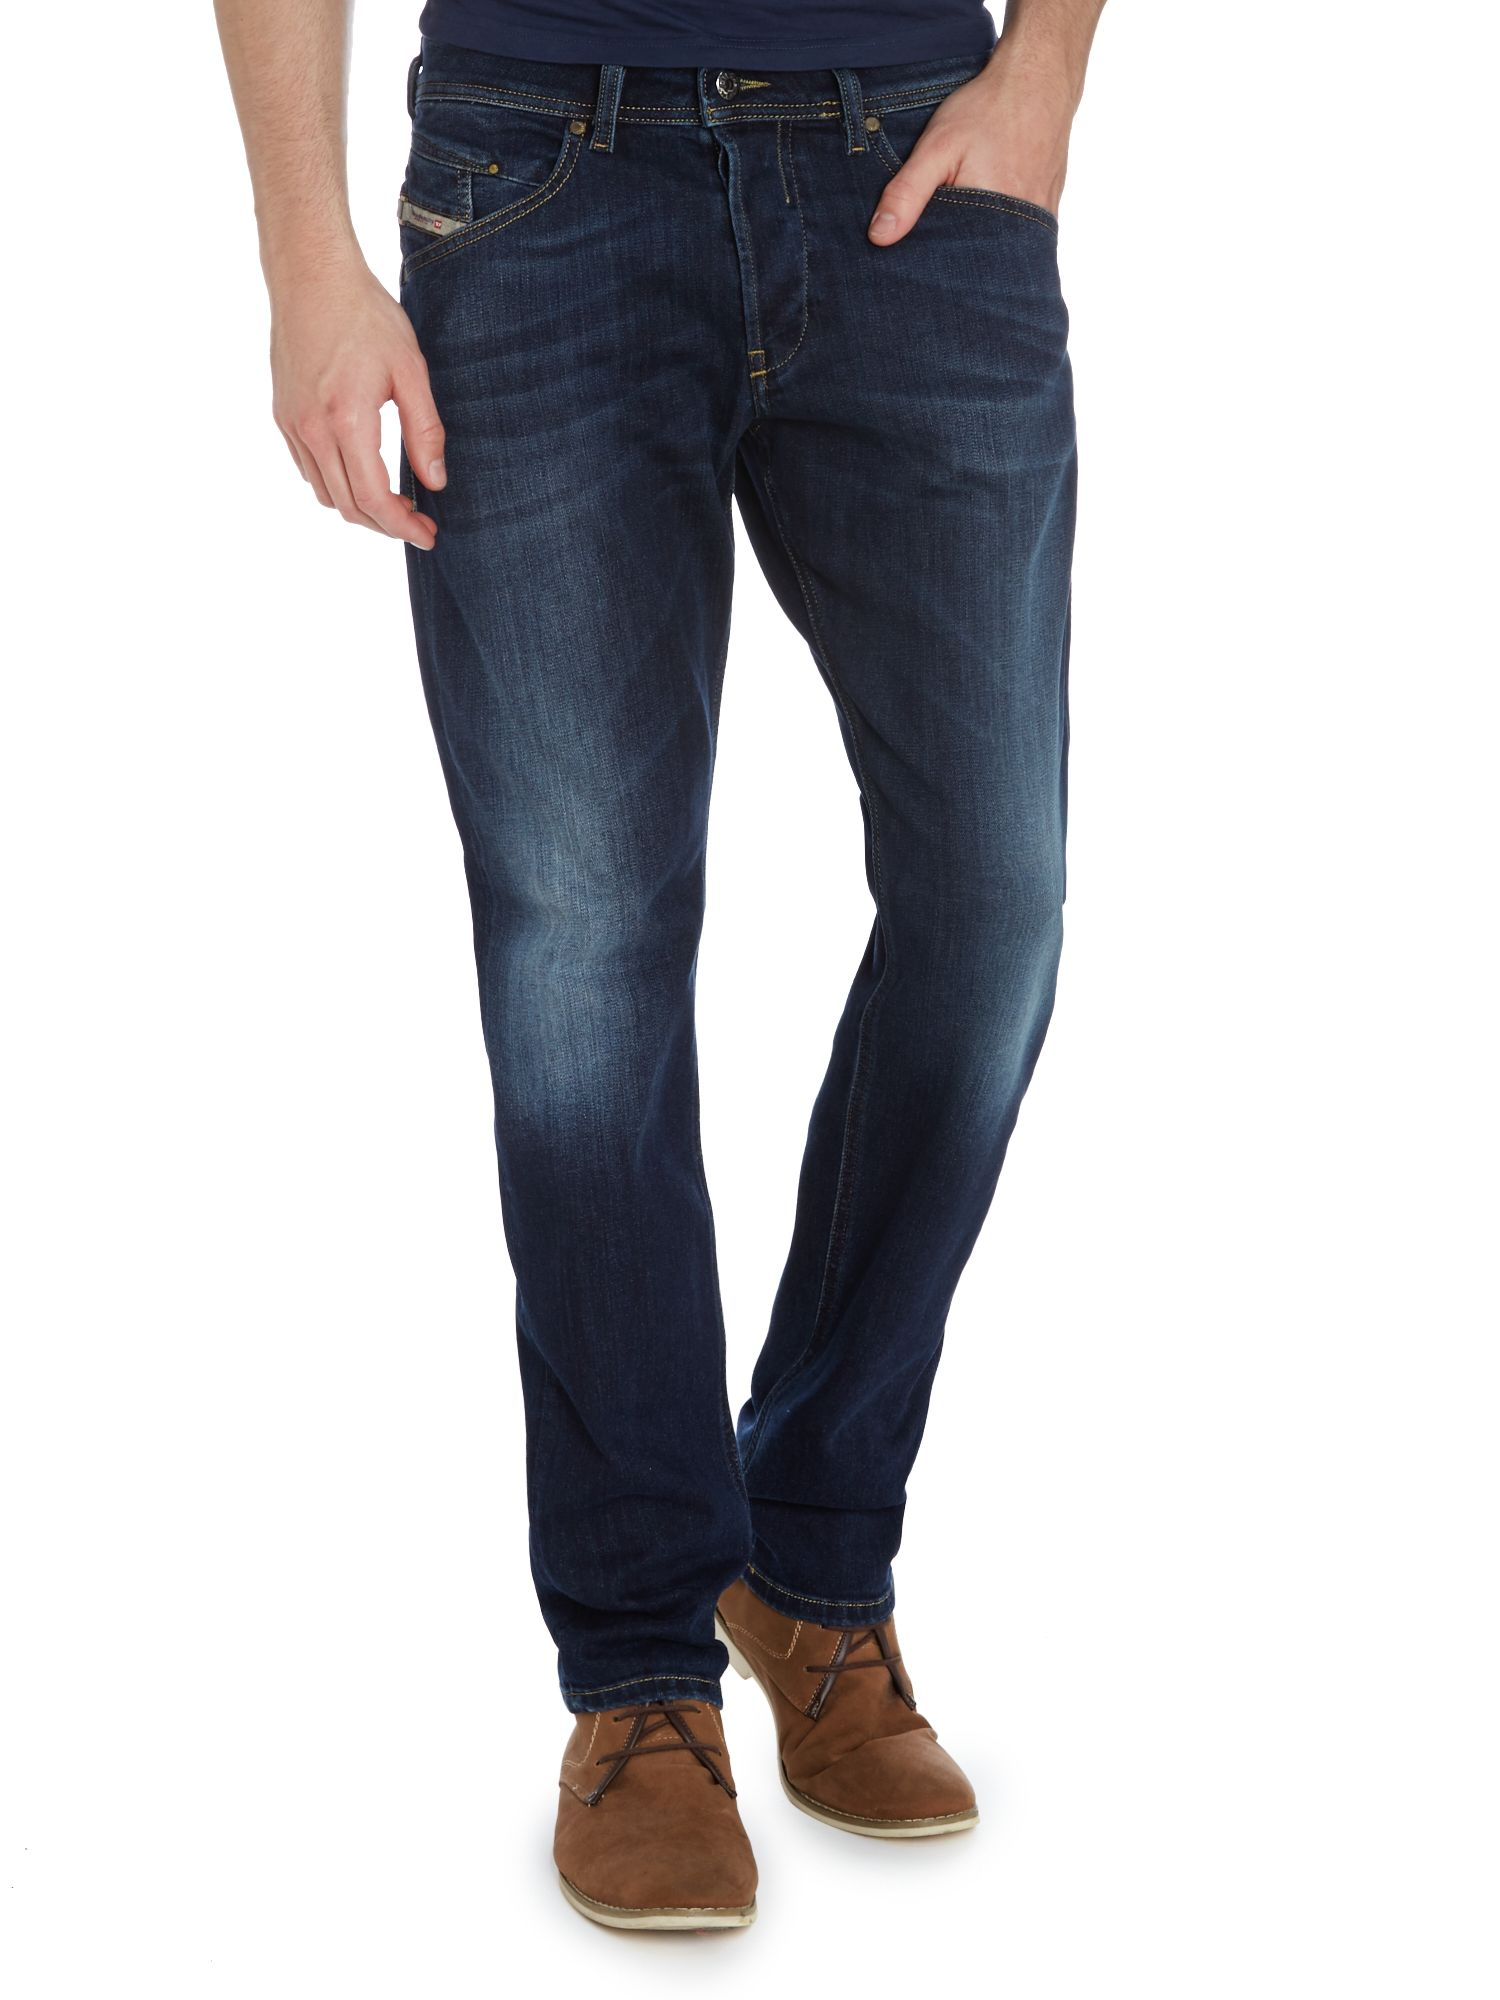 Belther 814W jean